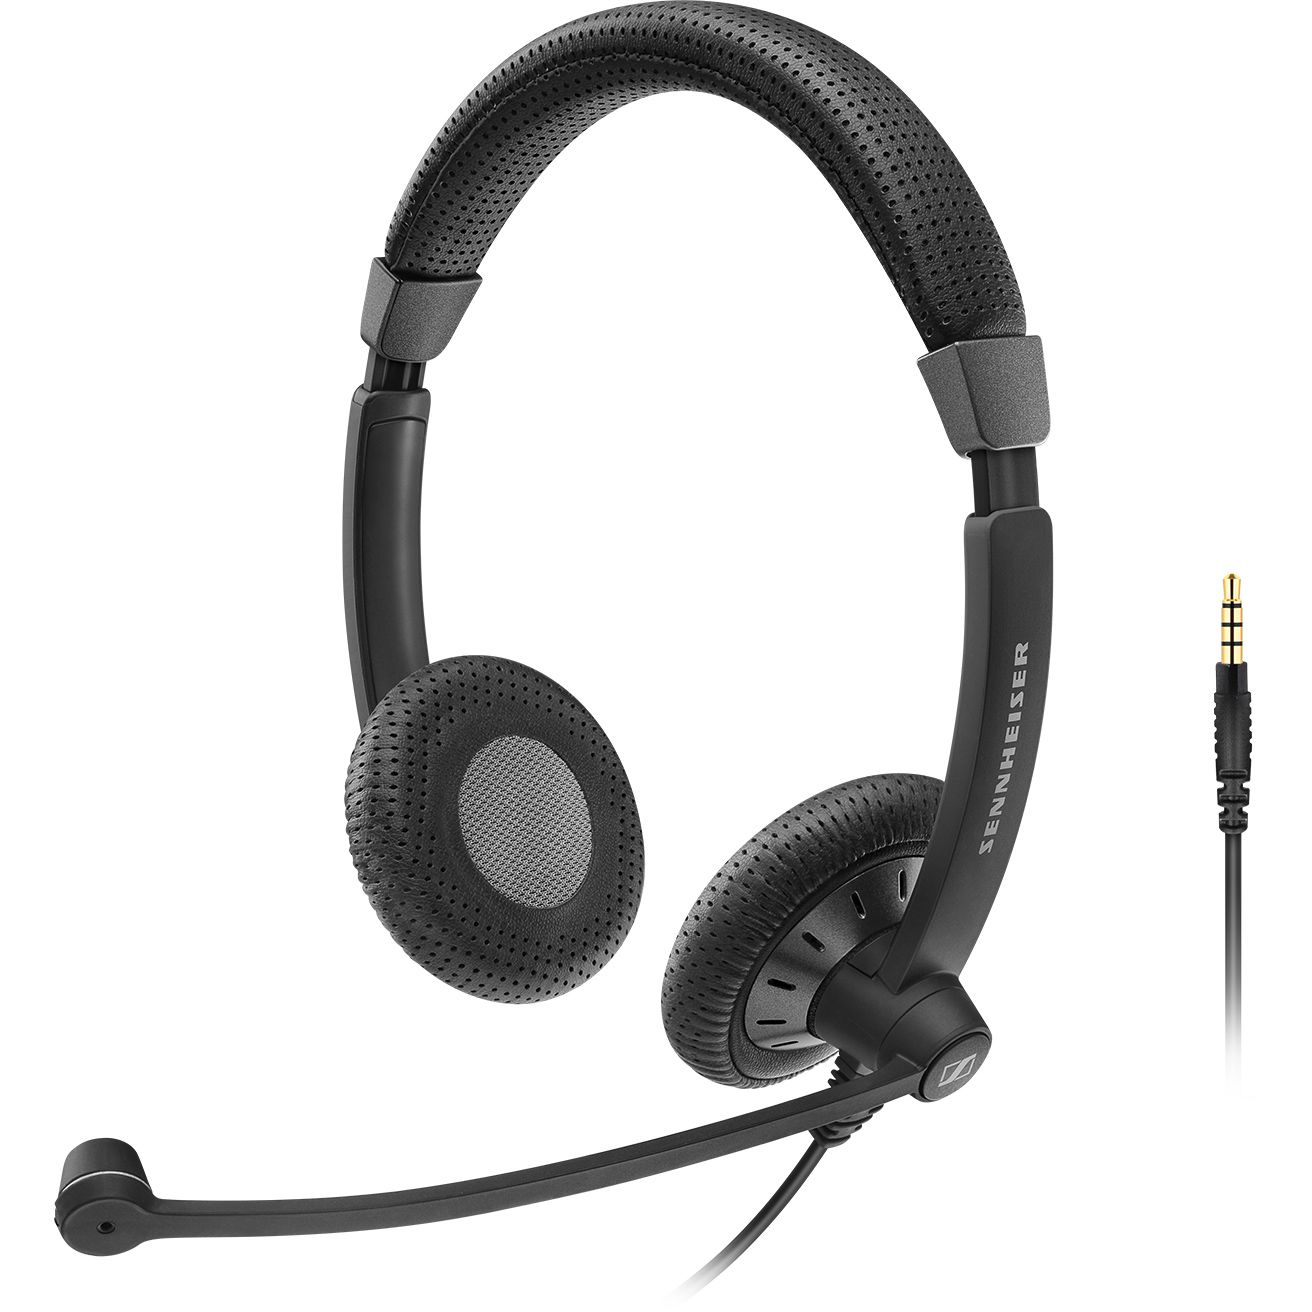 Sennheiser SC 75 Binaural Head-band Black headset